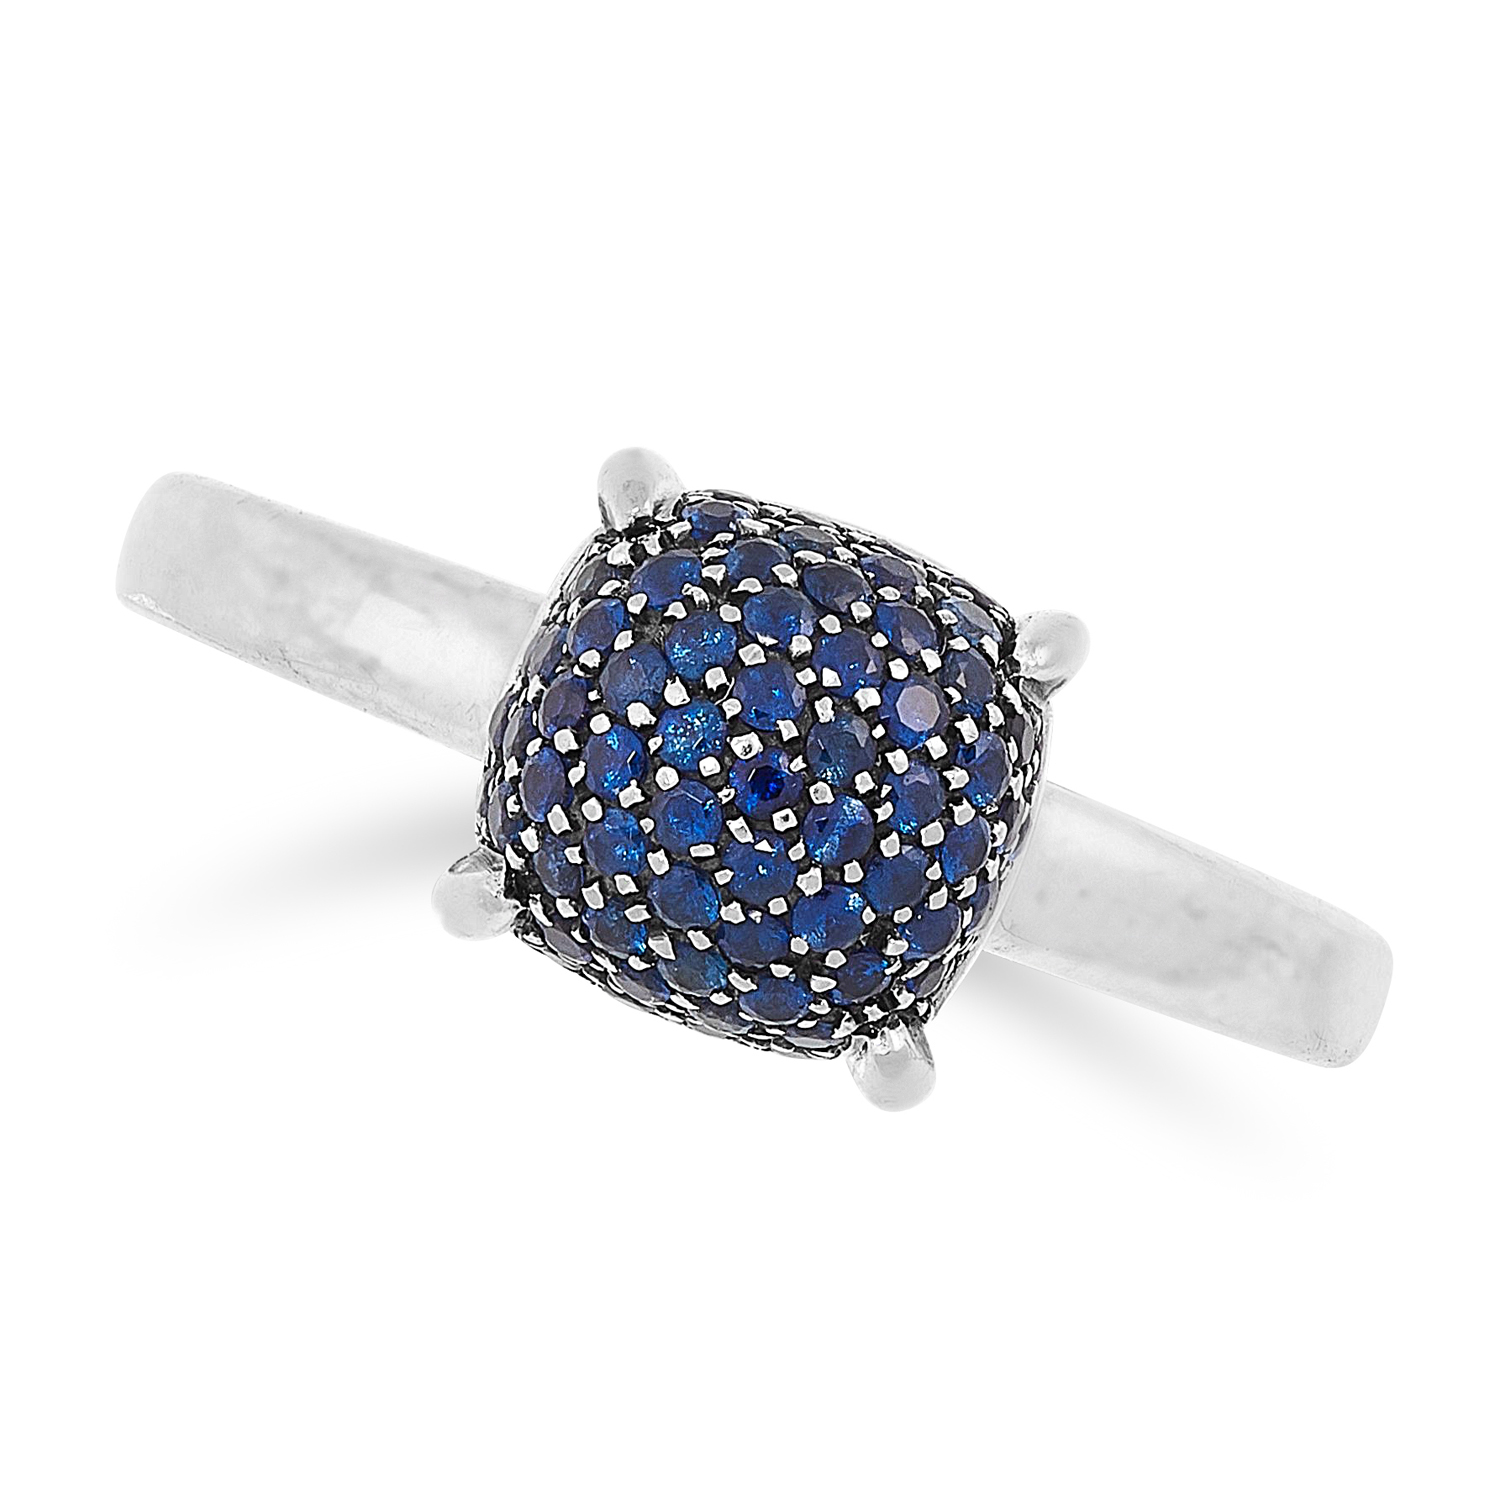 A SAPPHIRE SUGAR STACKS RING, PALOMA PICASSO FOR T